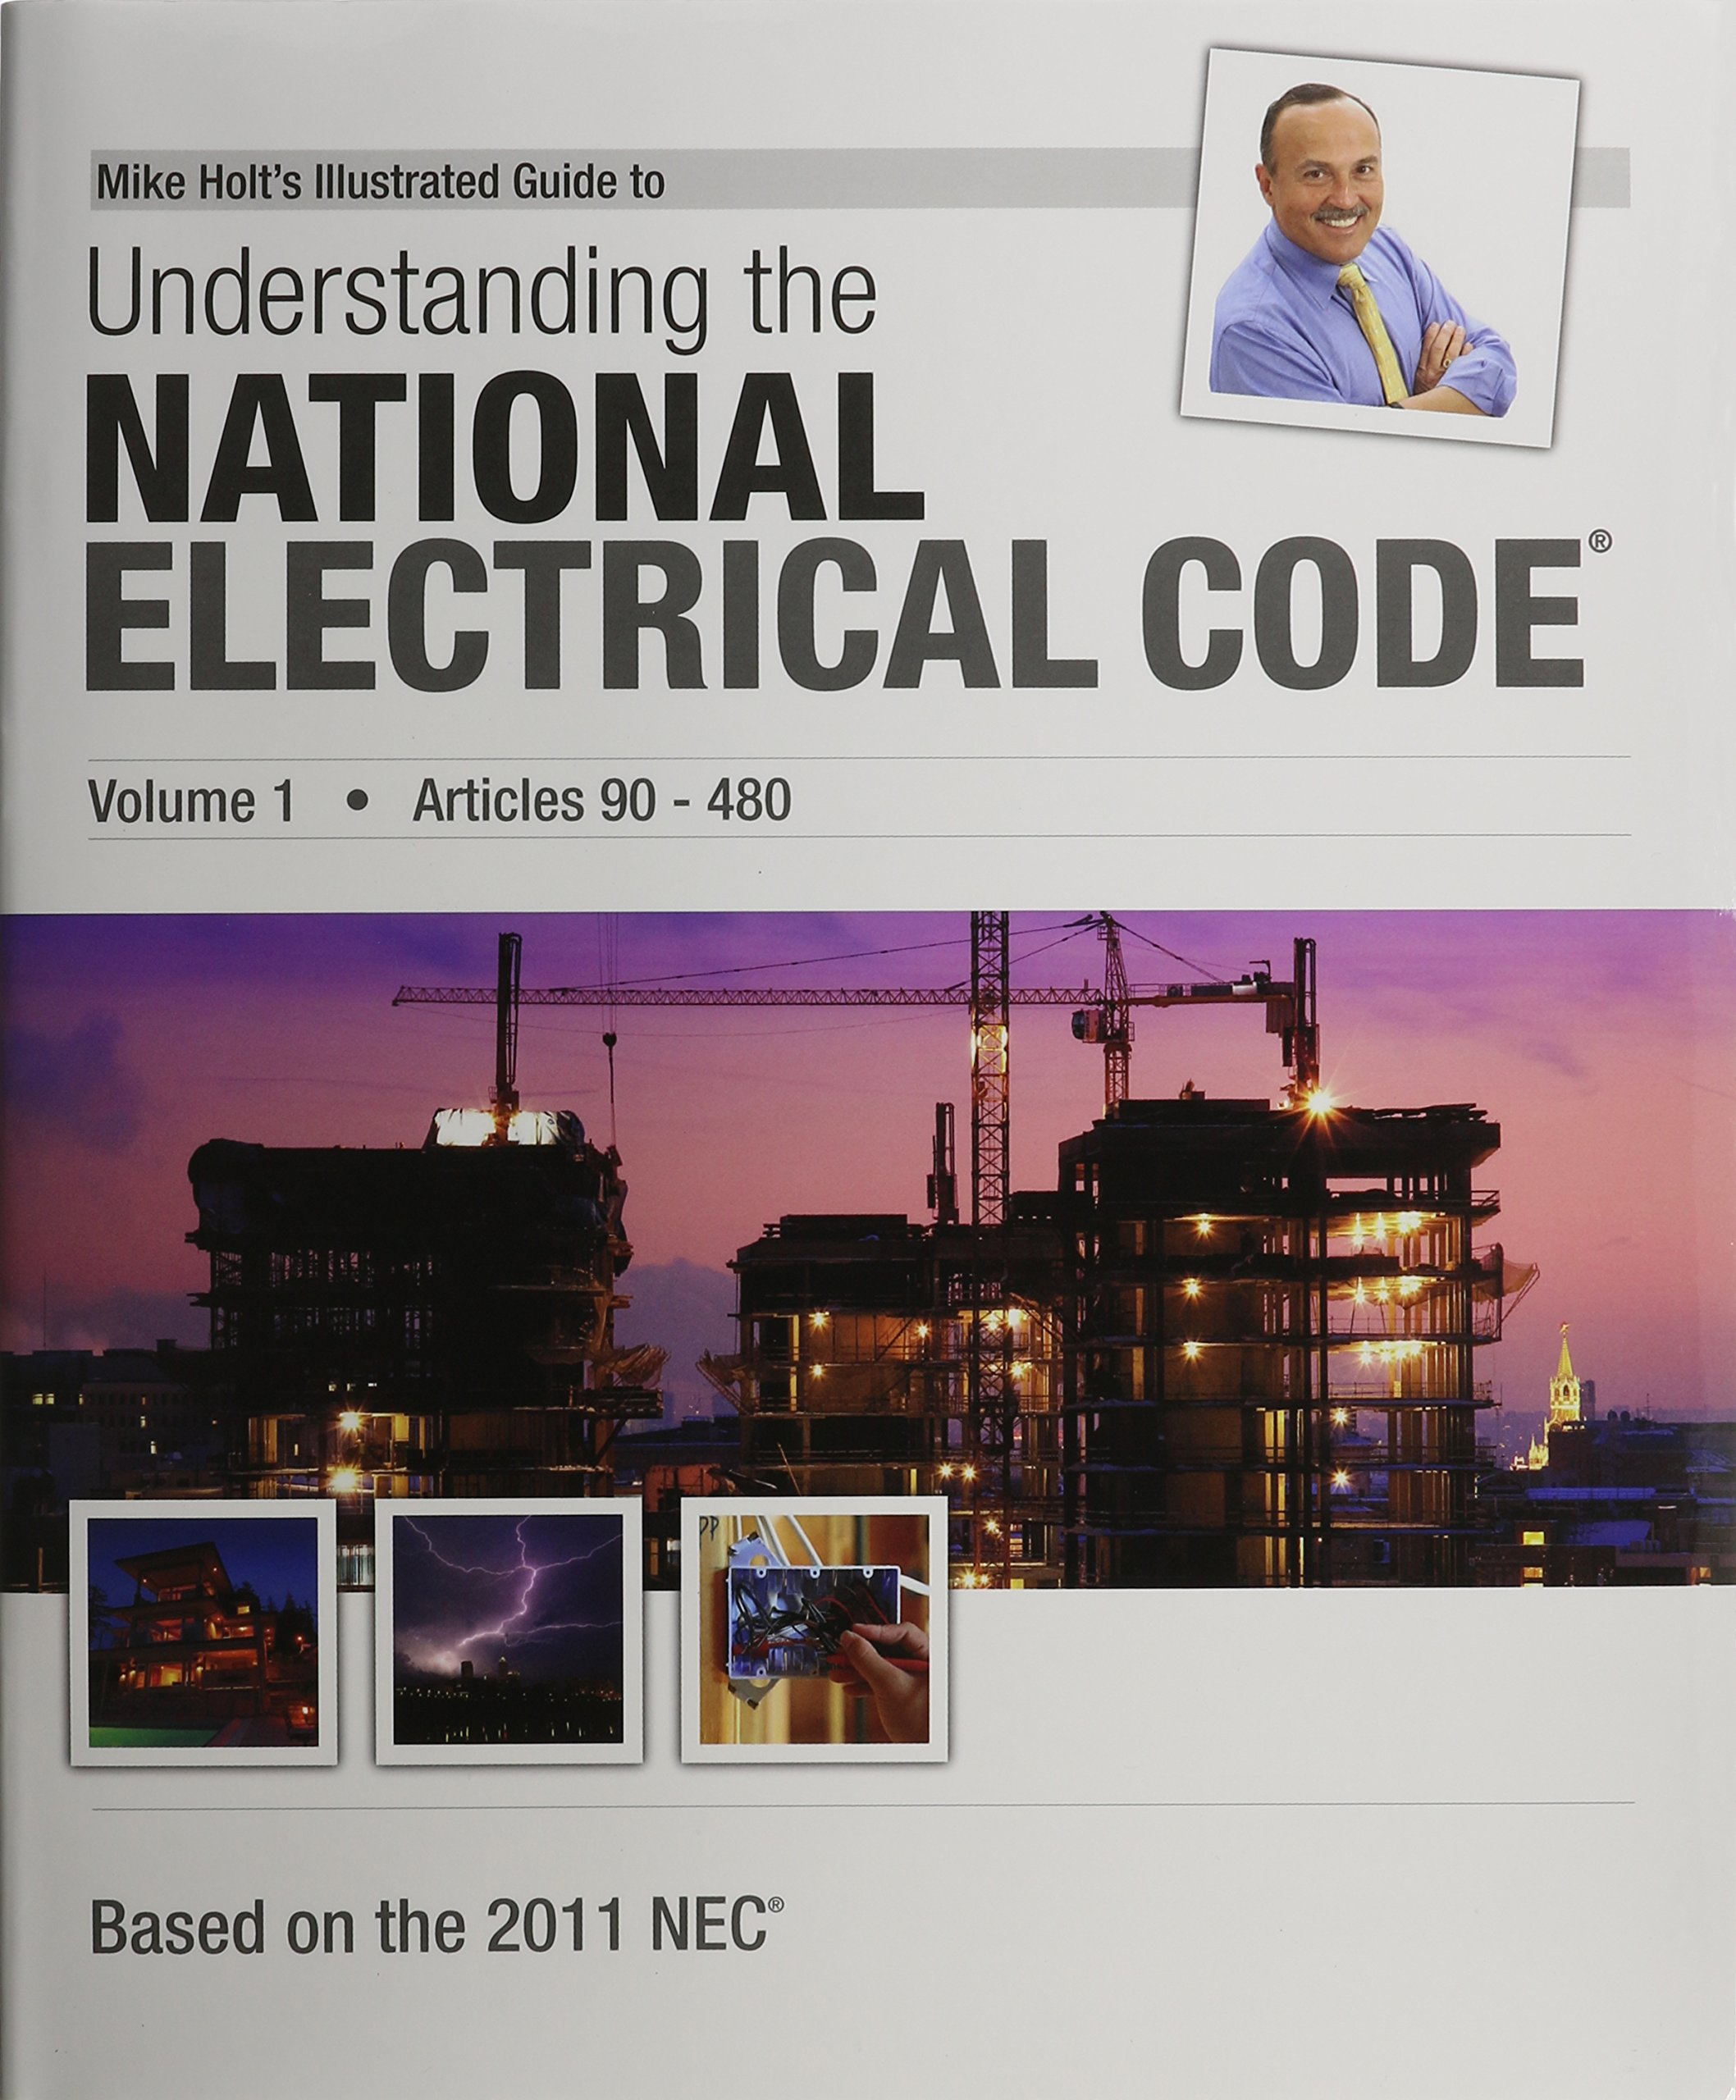 Mike Holt's Illustrated Guide to Understanding the NEC Volume 1, 2011  Edition: Mike Holt: 9781932685510: Amazon.com: Books